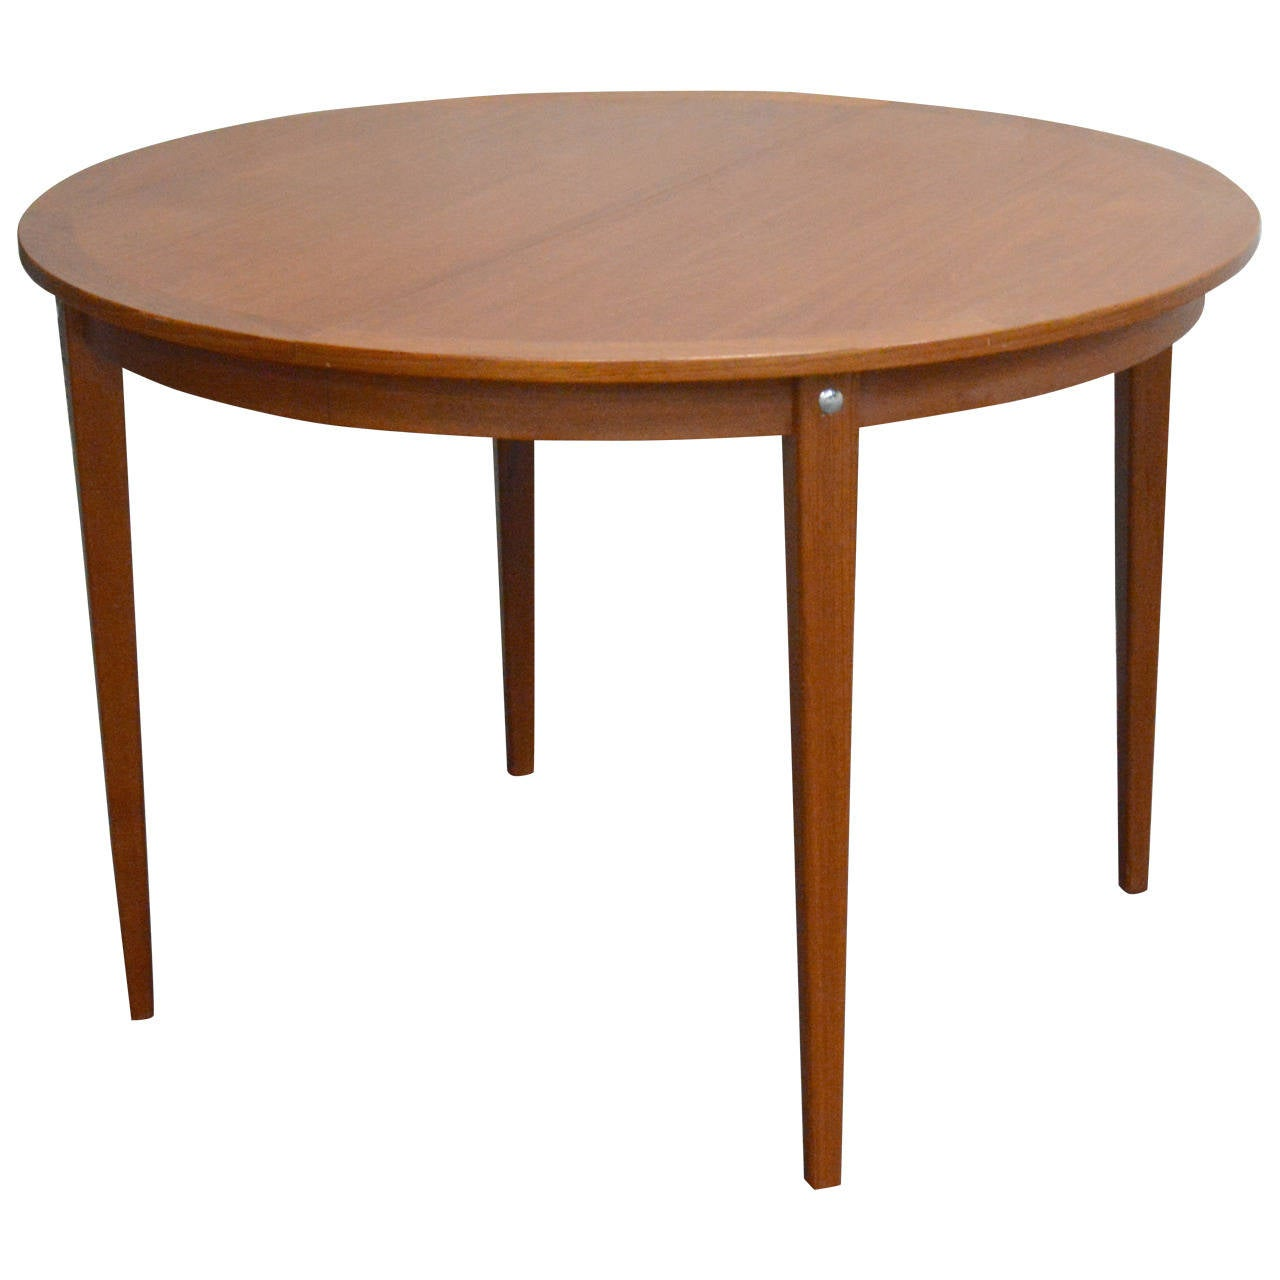 Mid century modern round swedish teak dining table for for Dining room tables 1940s